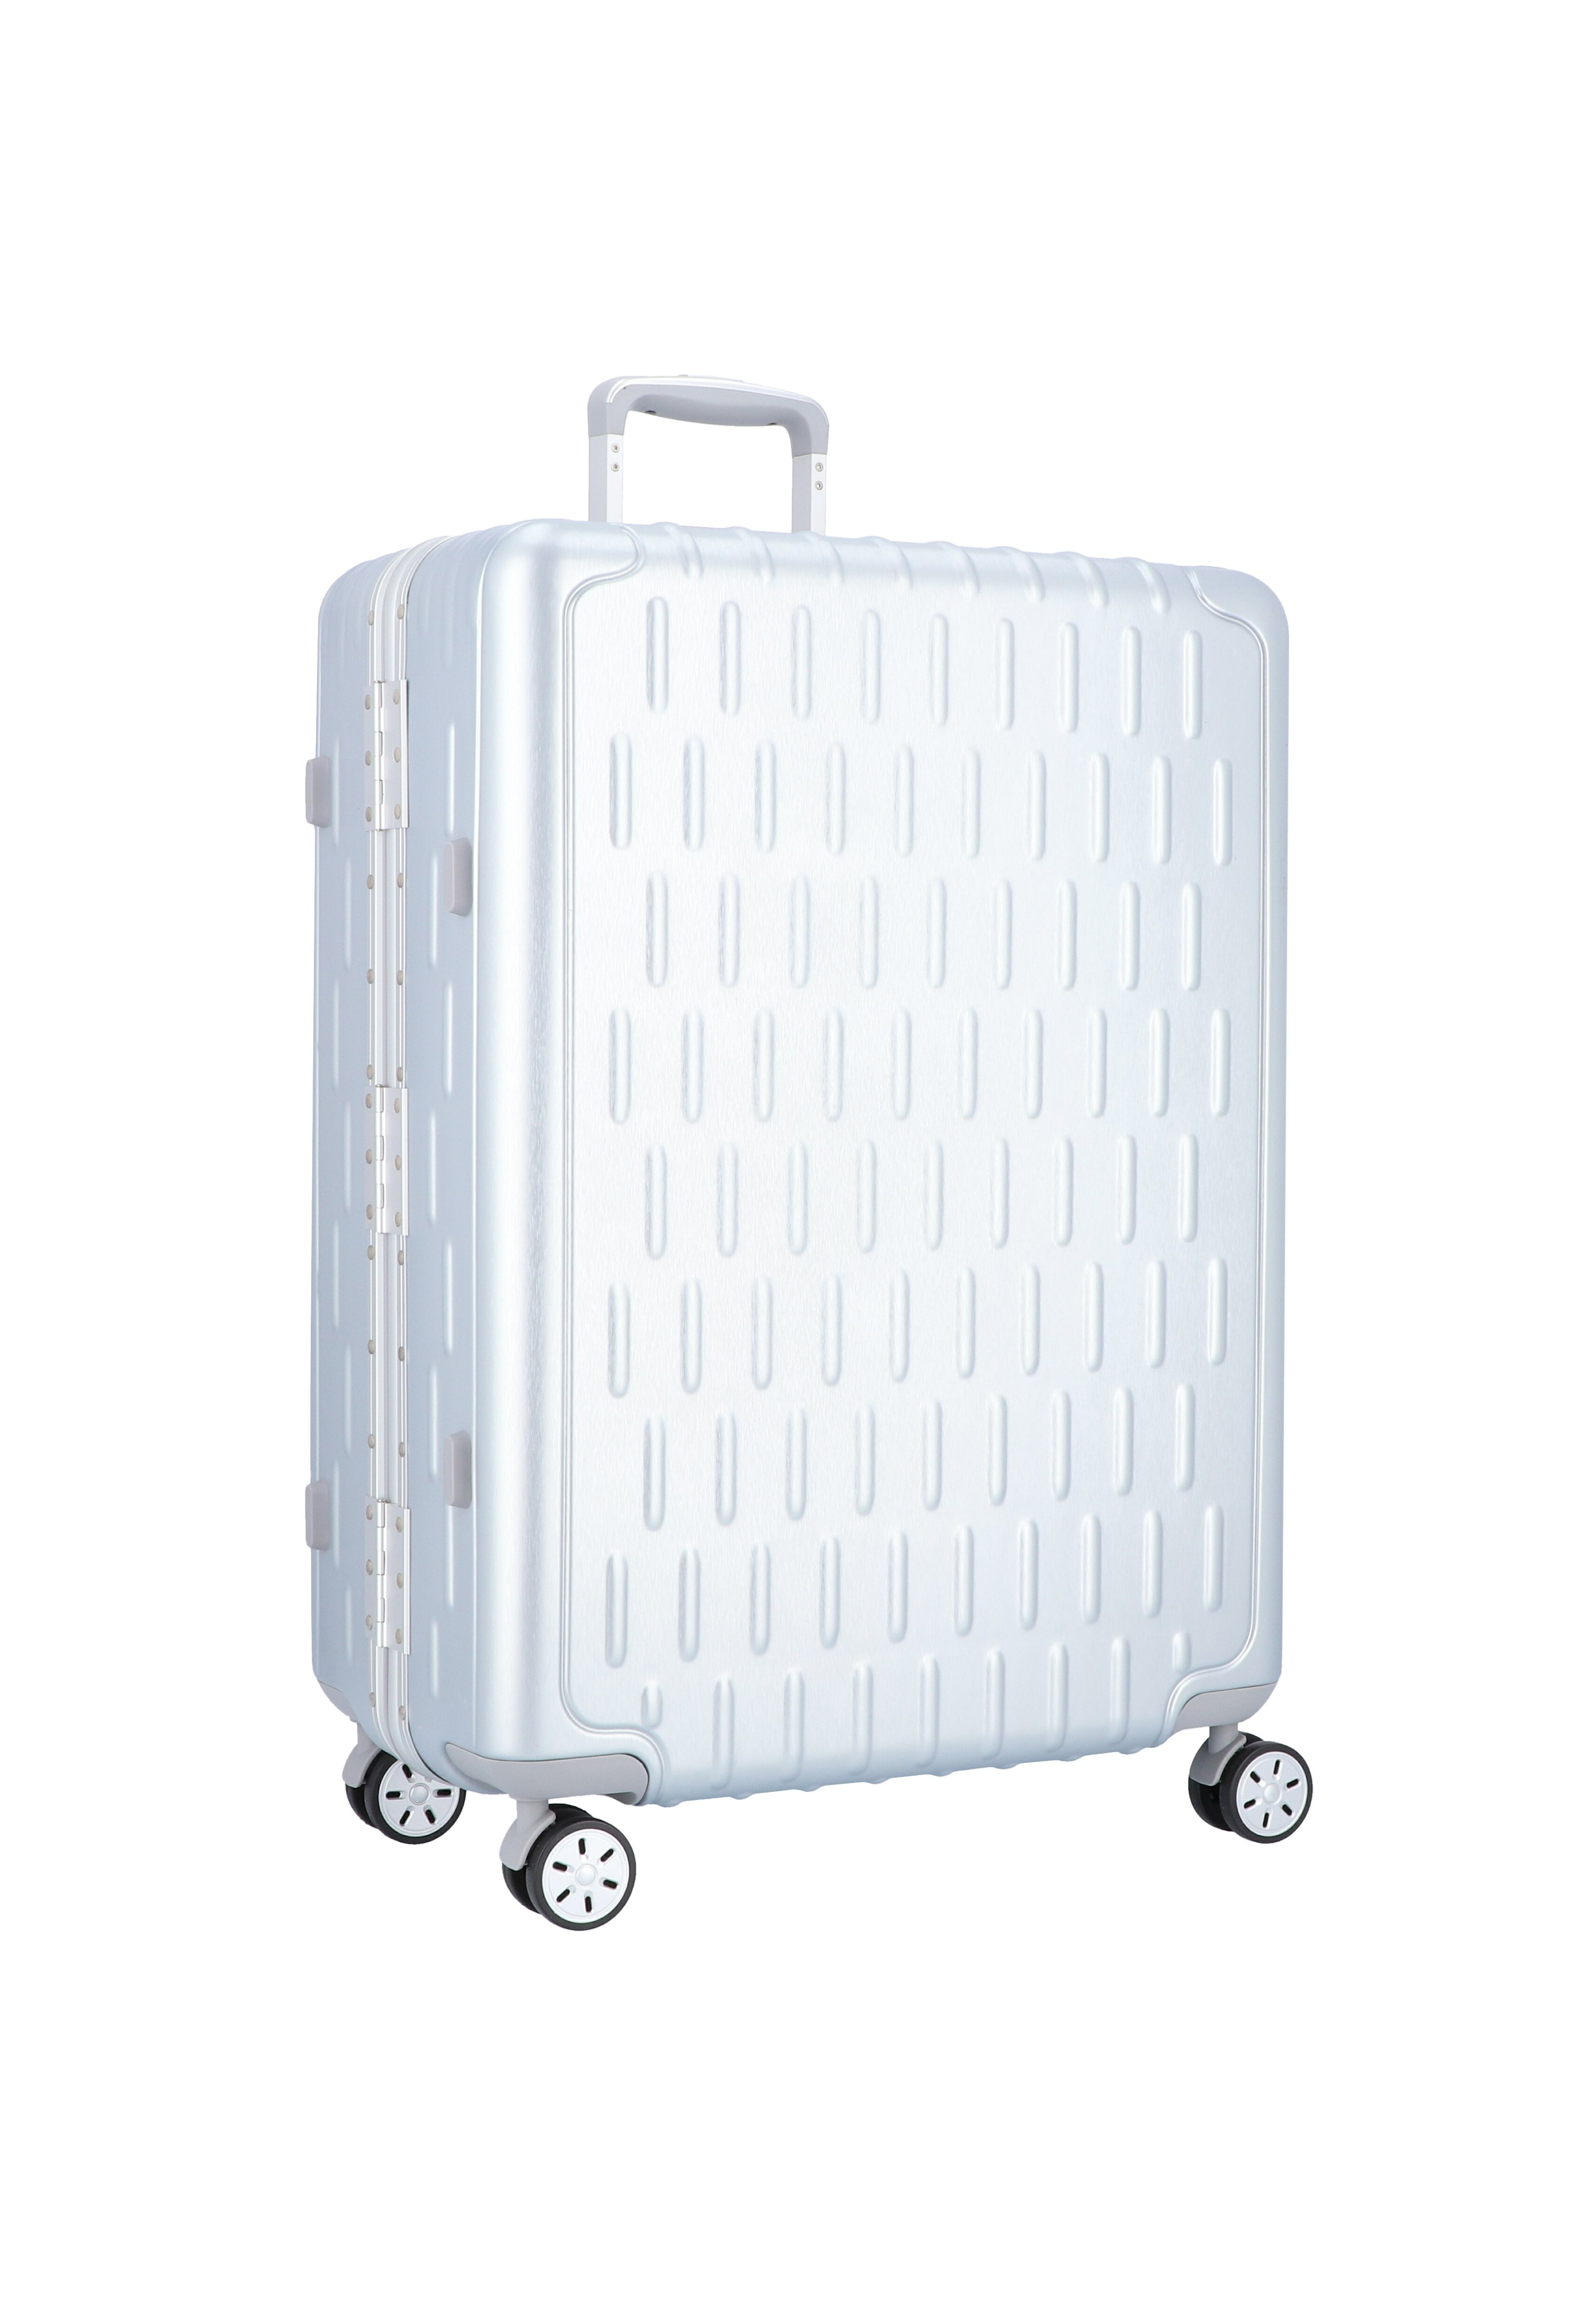 March Luggage Valise À Roulettes - Silver Alu